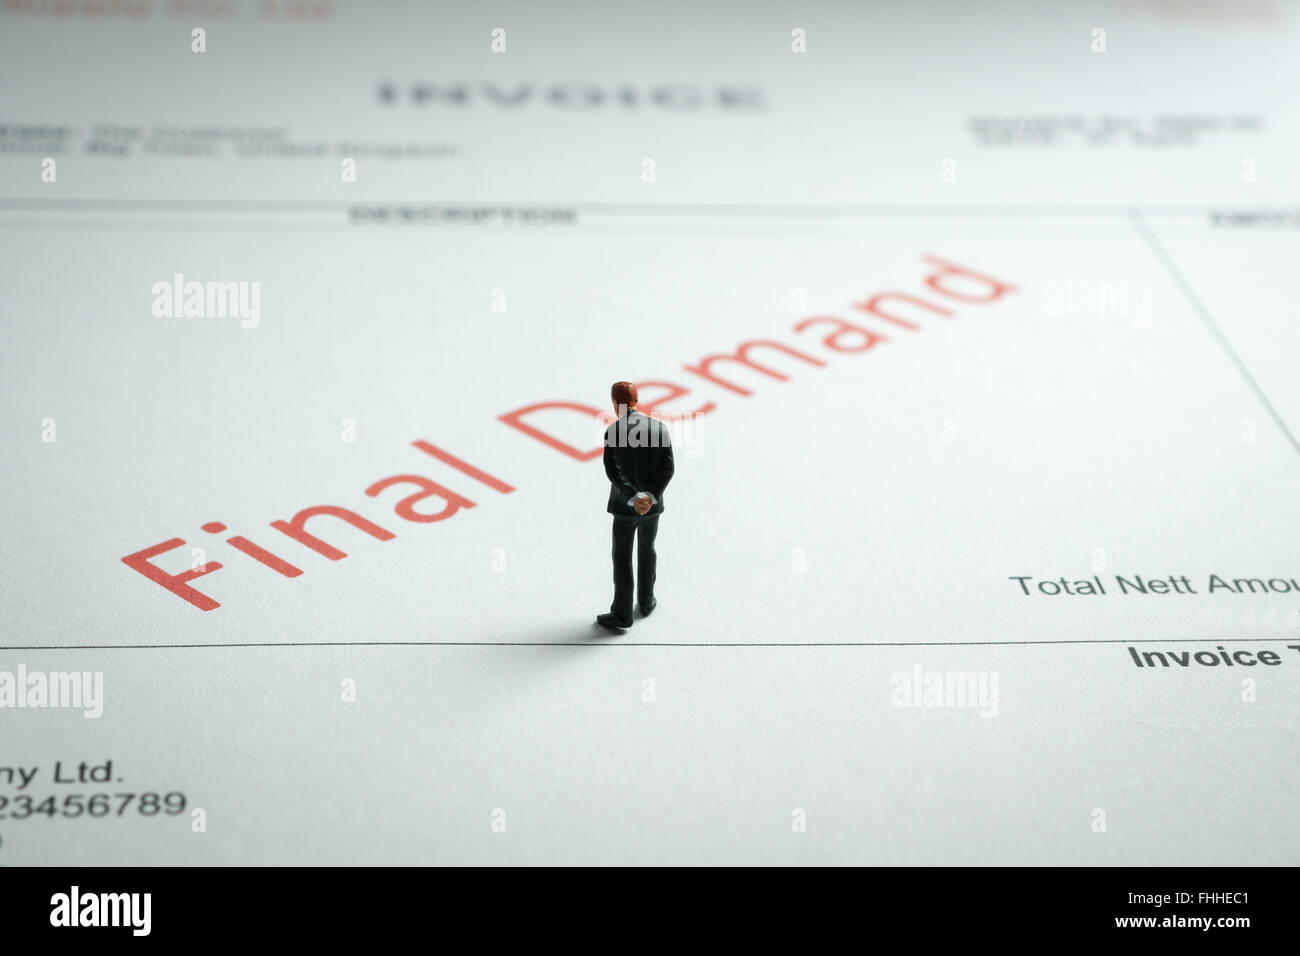 Miniature business man gloomily pondering an overdue final demand invoice a finance or debt concept - Stock Image